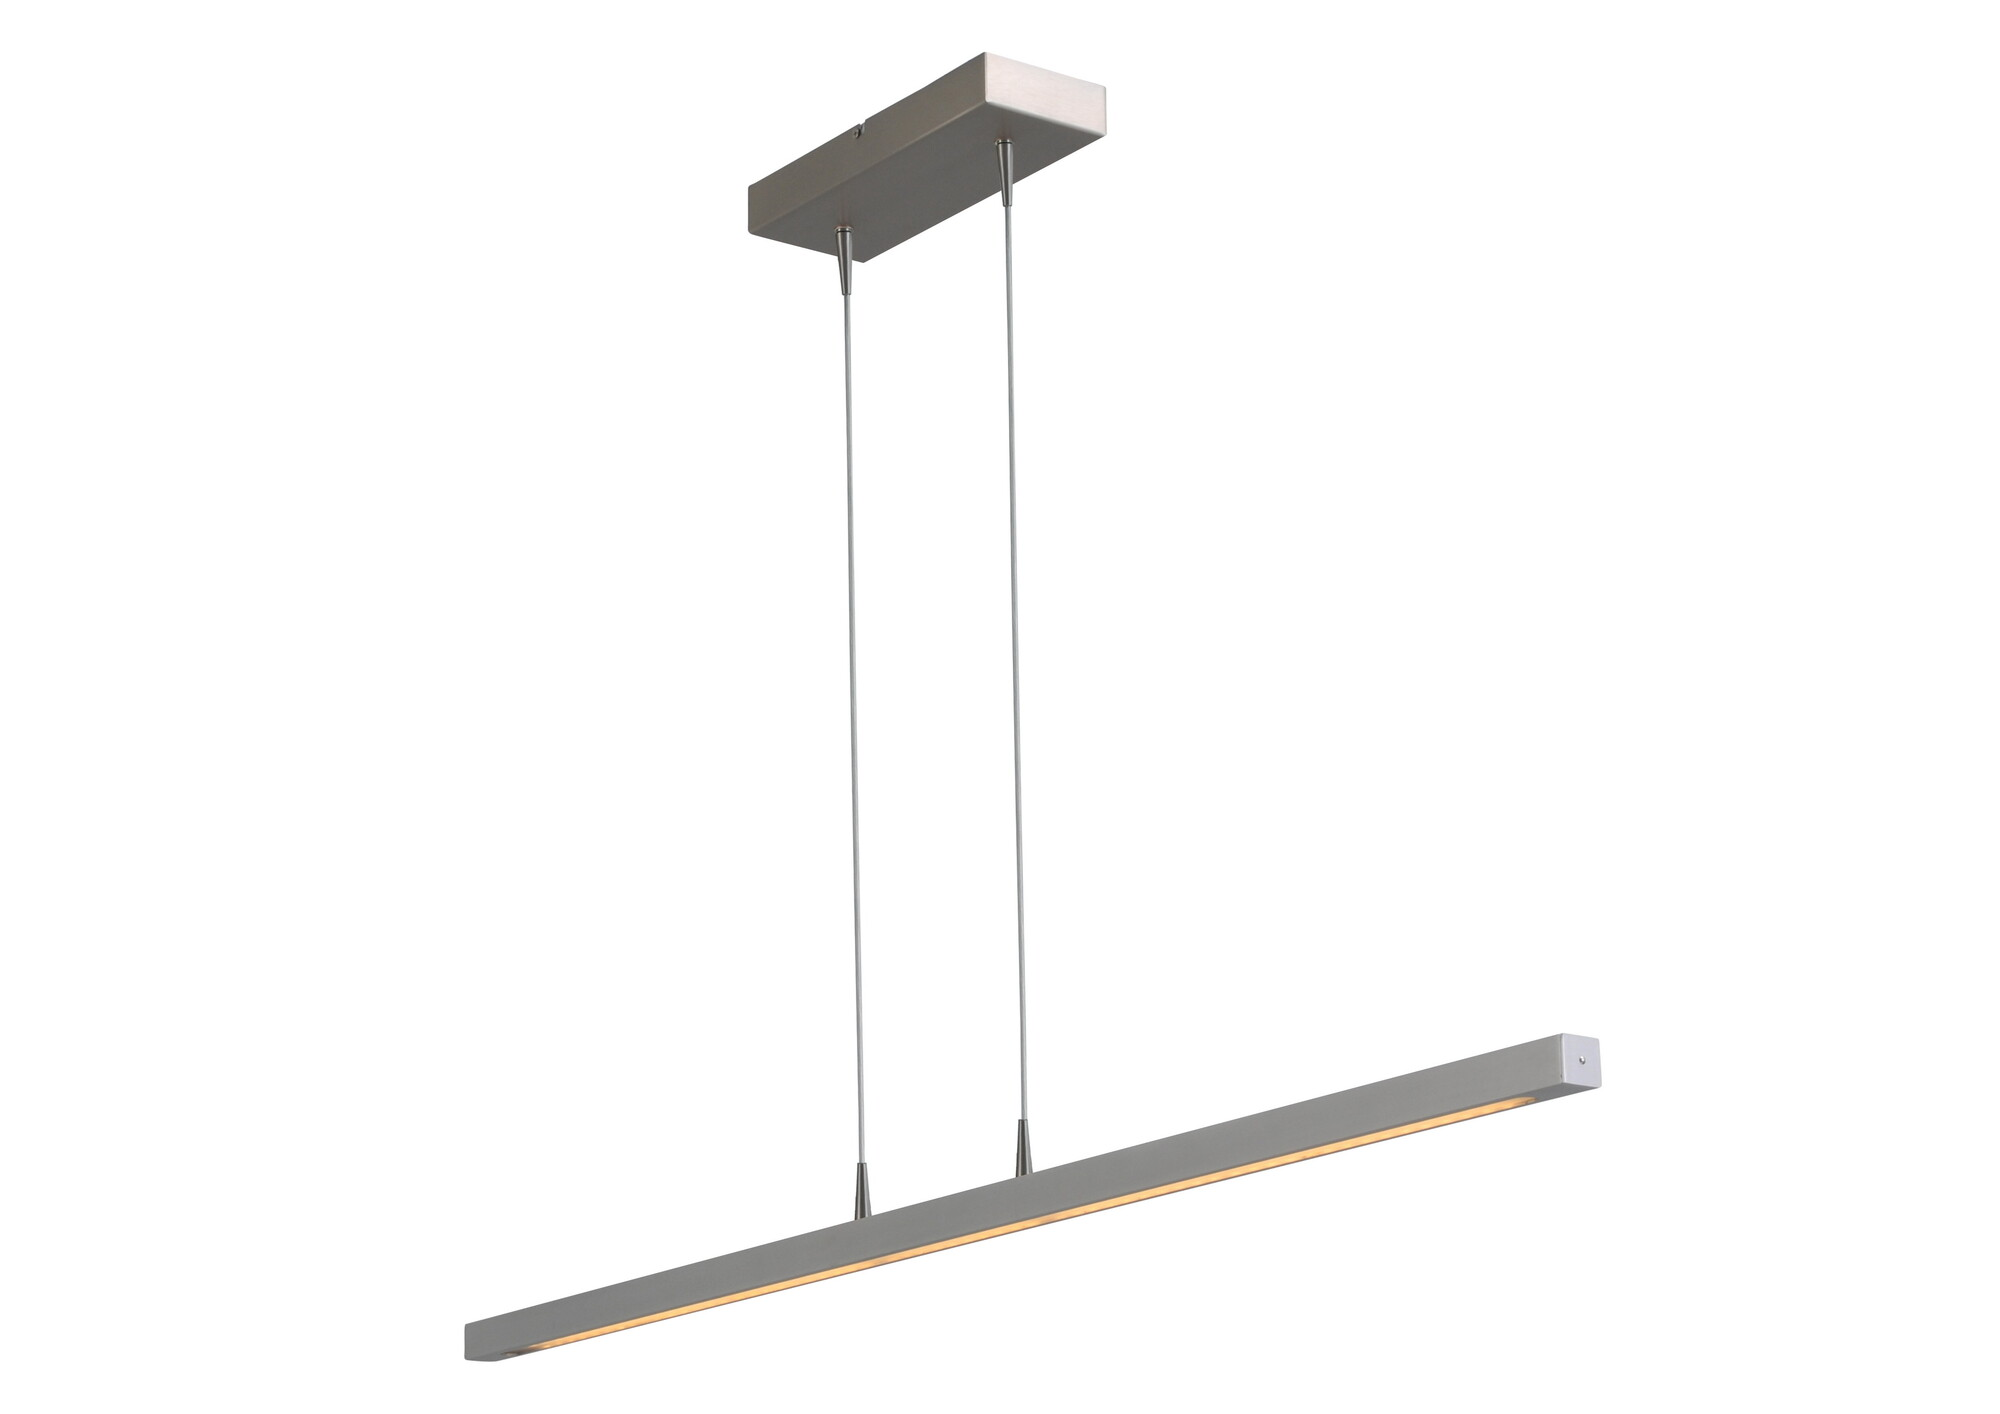 REAL Hanglamp LED 1x34W/4800lm Zilver